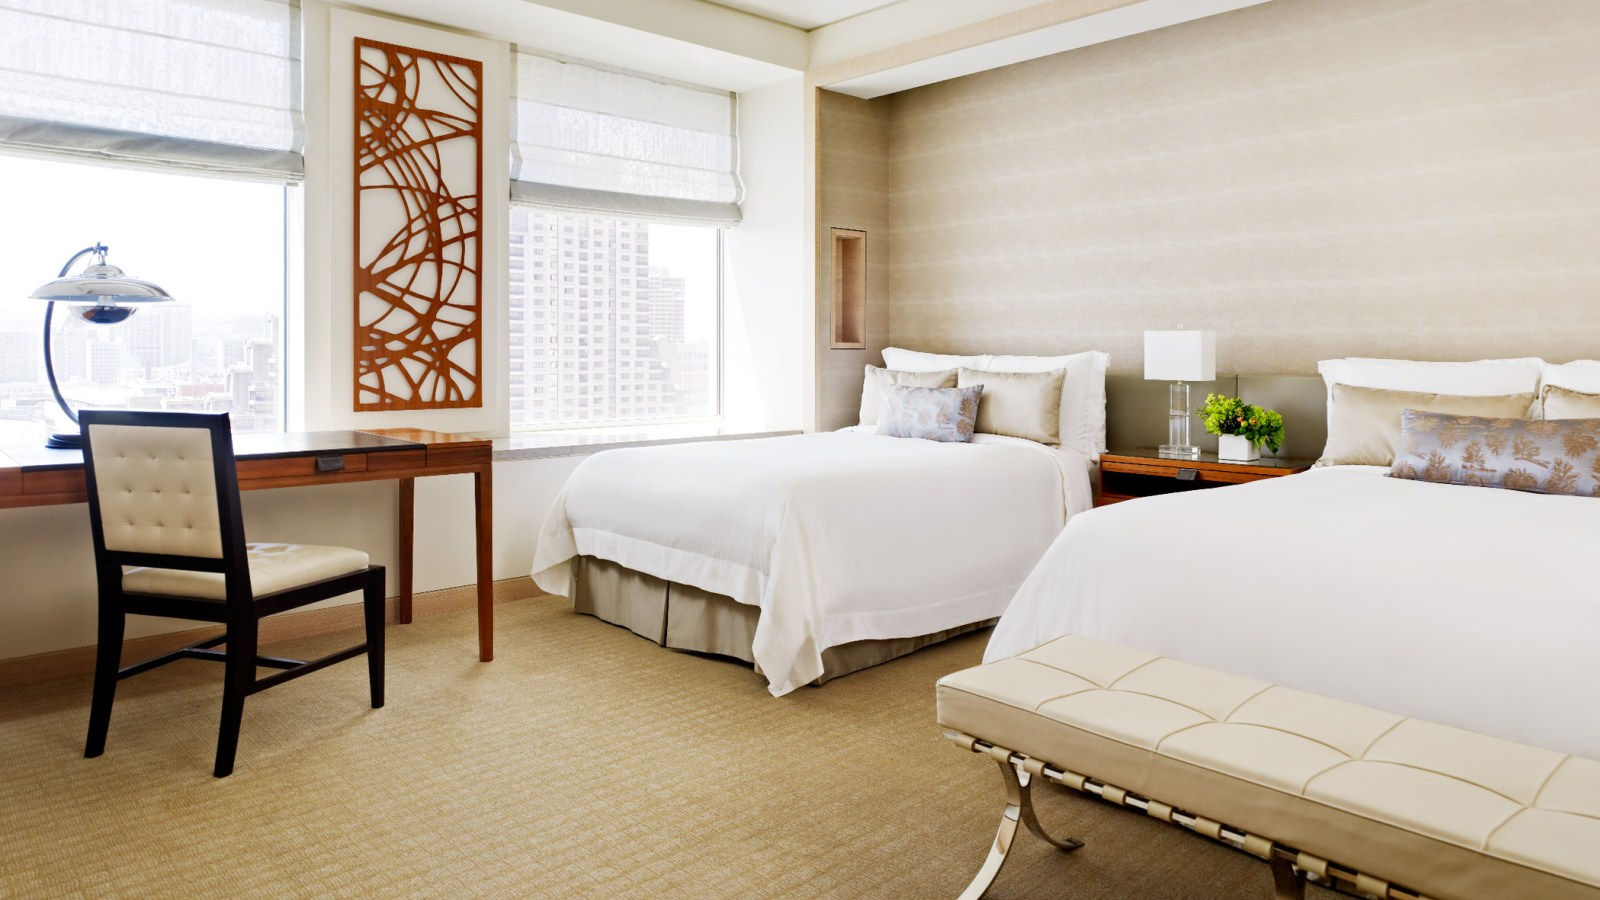 Inside a luxury 5 star Superior Guest Room at The St. Regis San Francisco